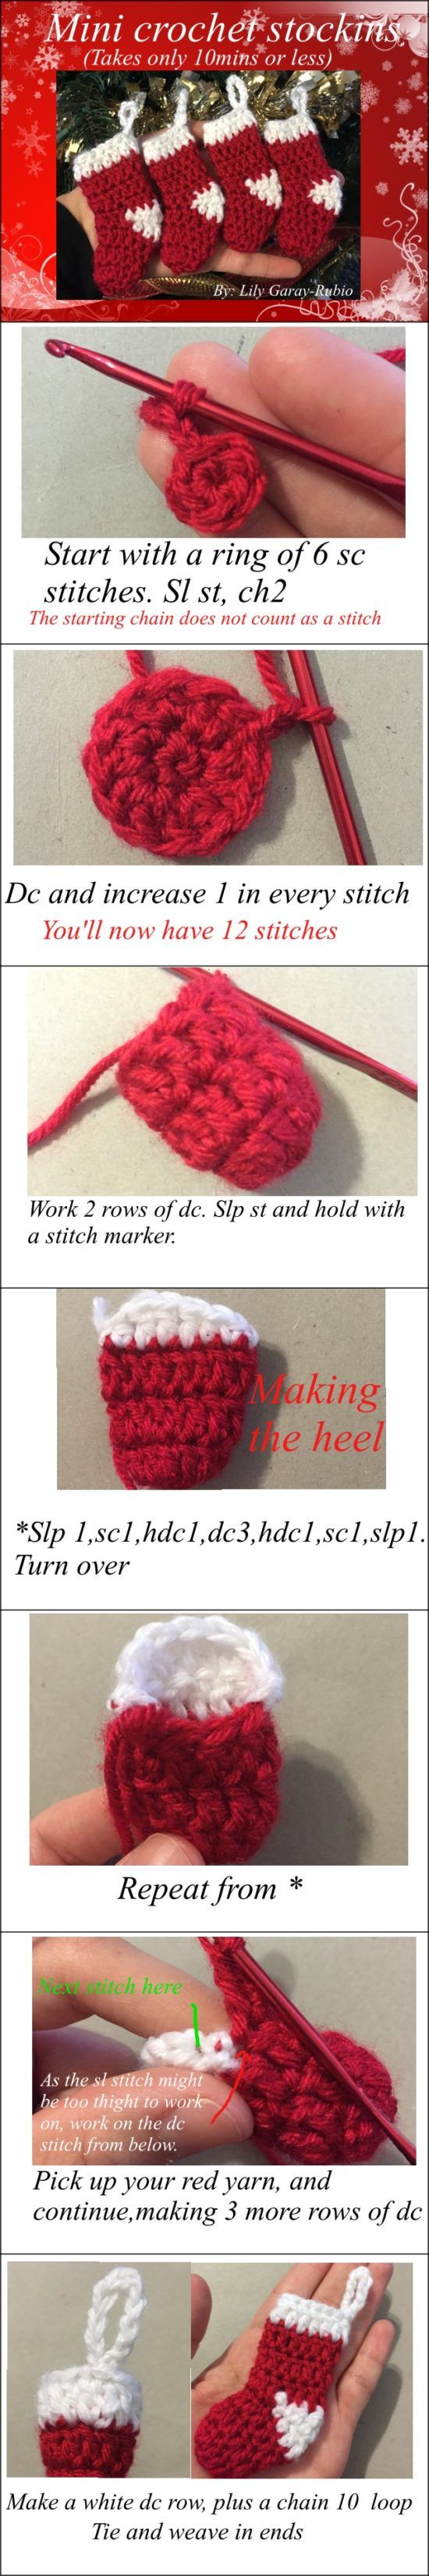 tutorial-natal-croche